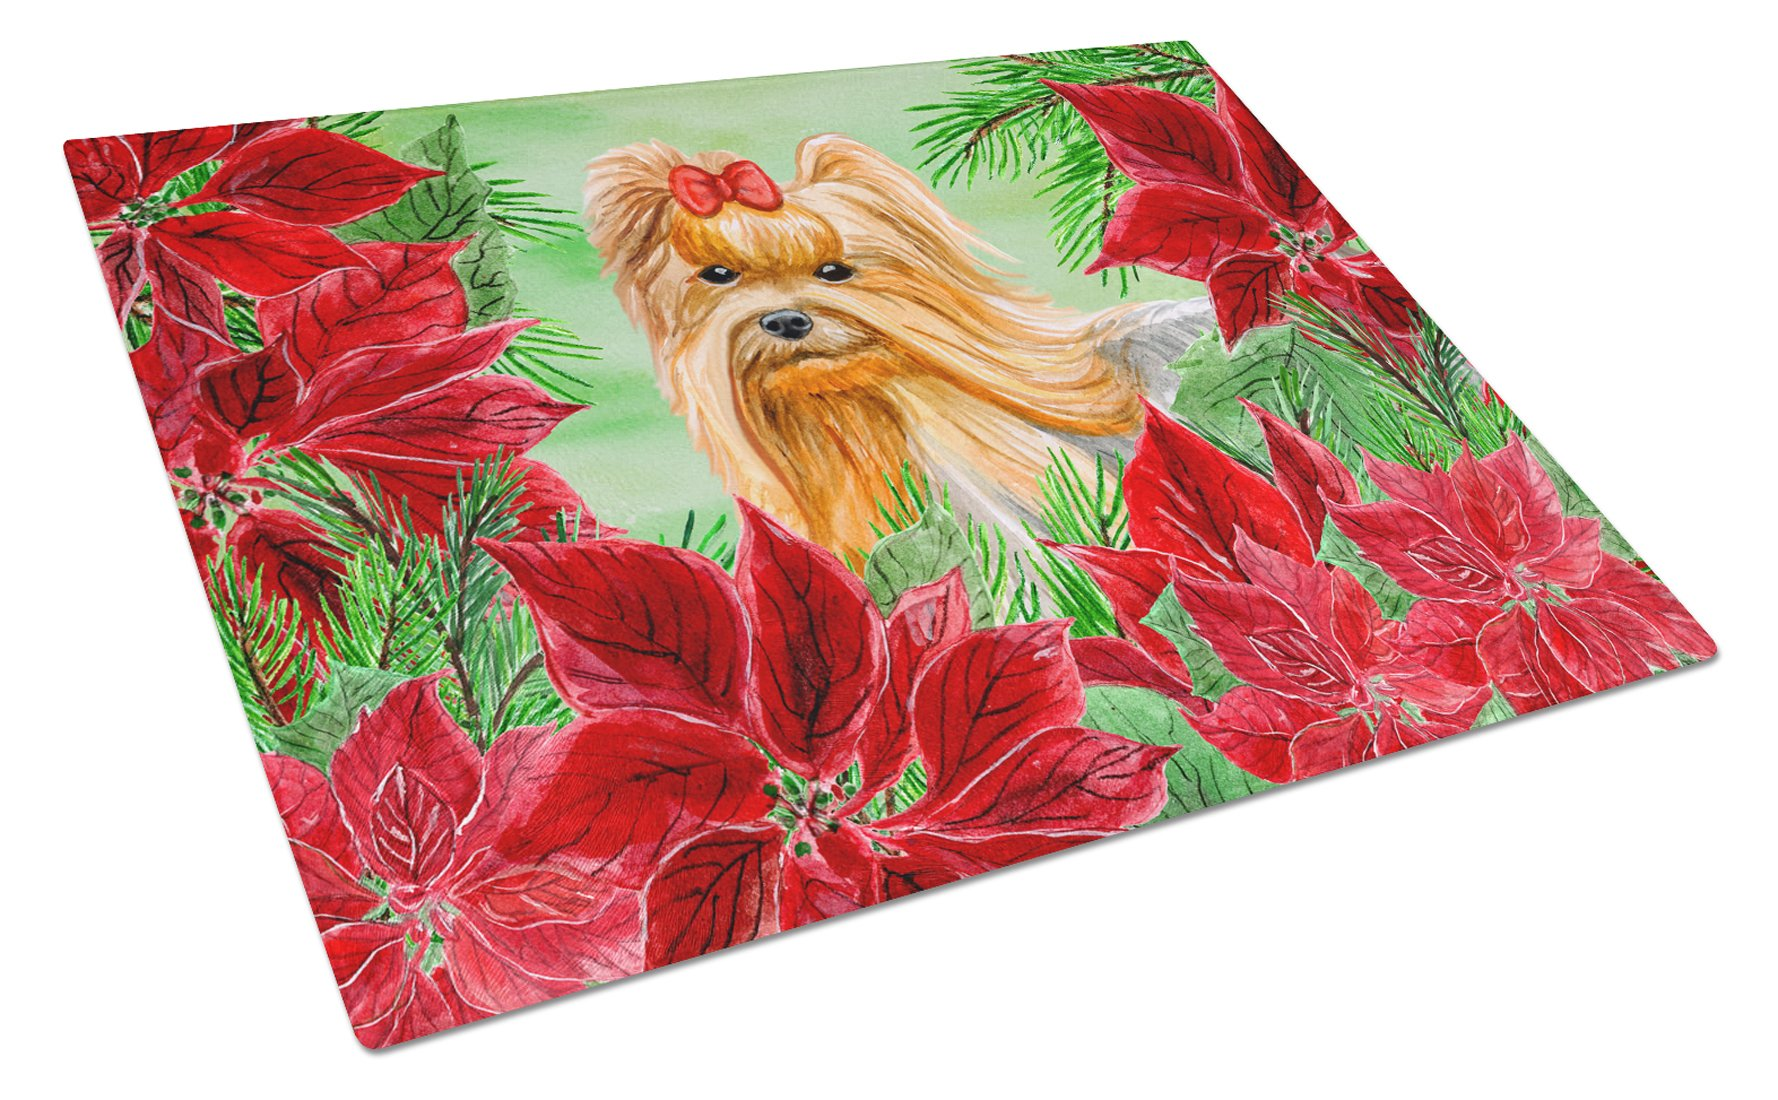 Yorkshire Terrier Poinsettas Glass Cutting Board Large CK1333LCB by Caroline's Treasures